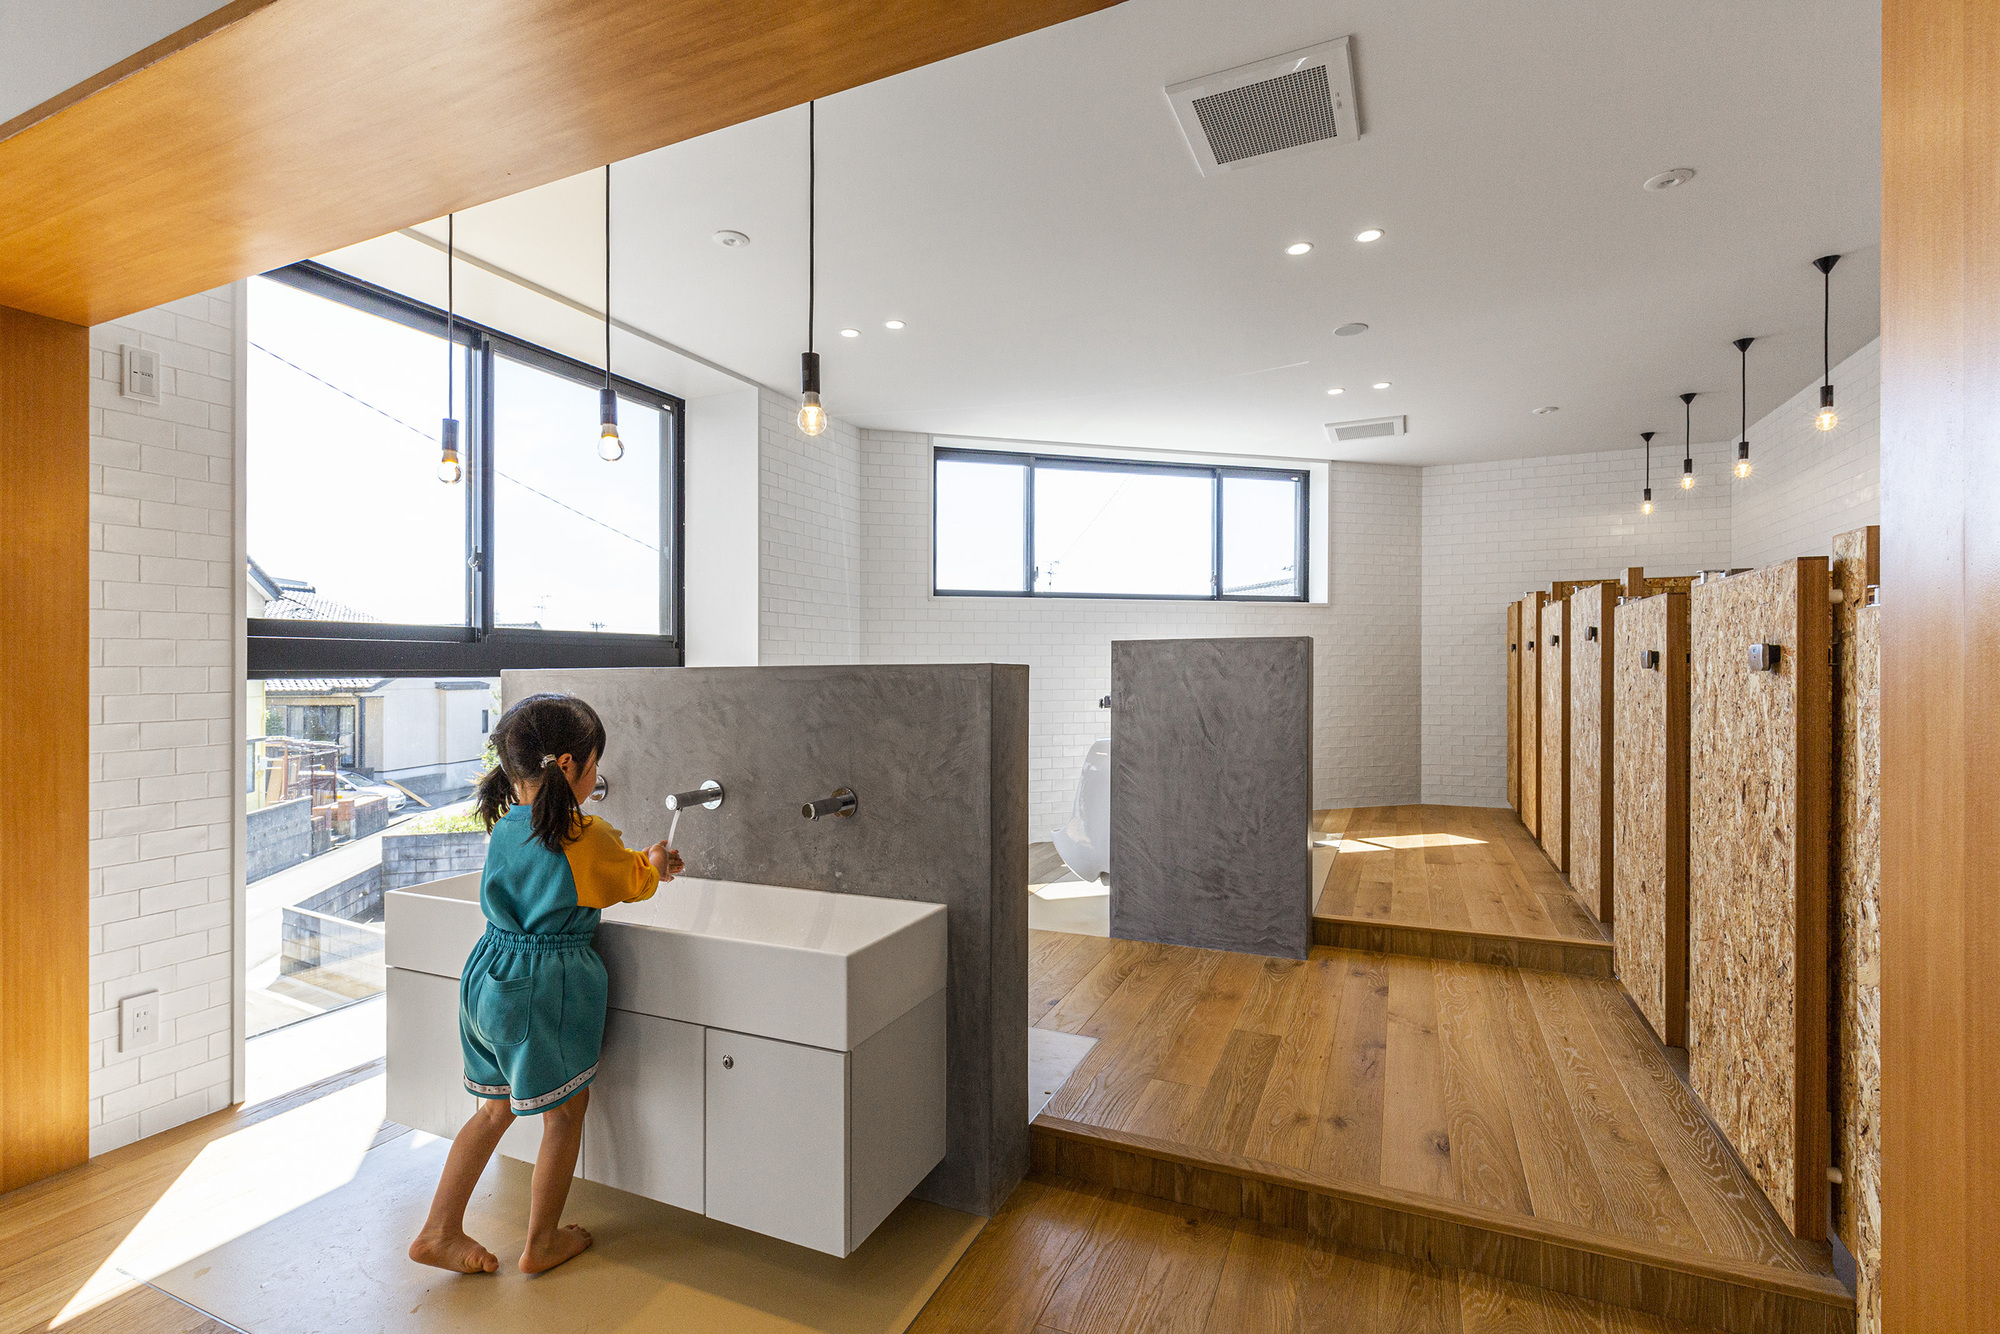 Public Bathrooms for Children: Design Tips and Inspiration | ArchDaily